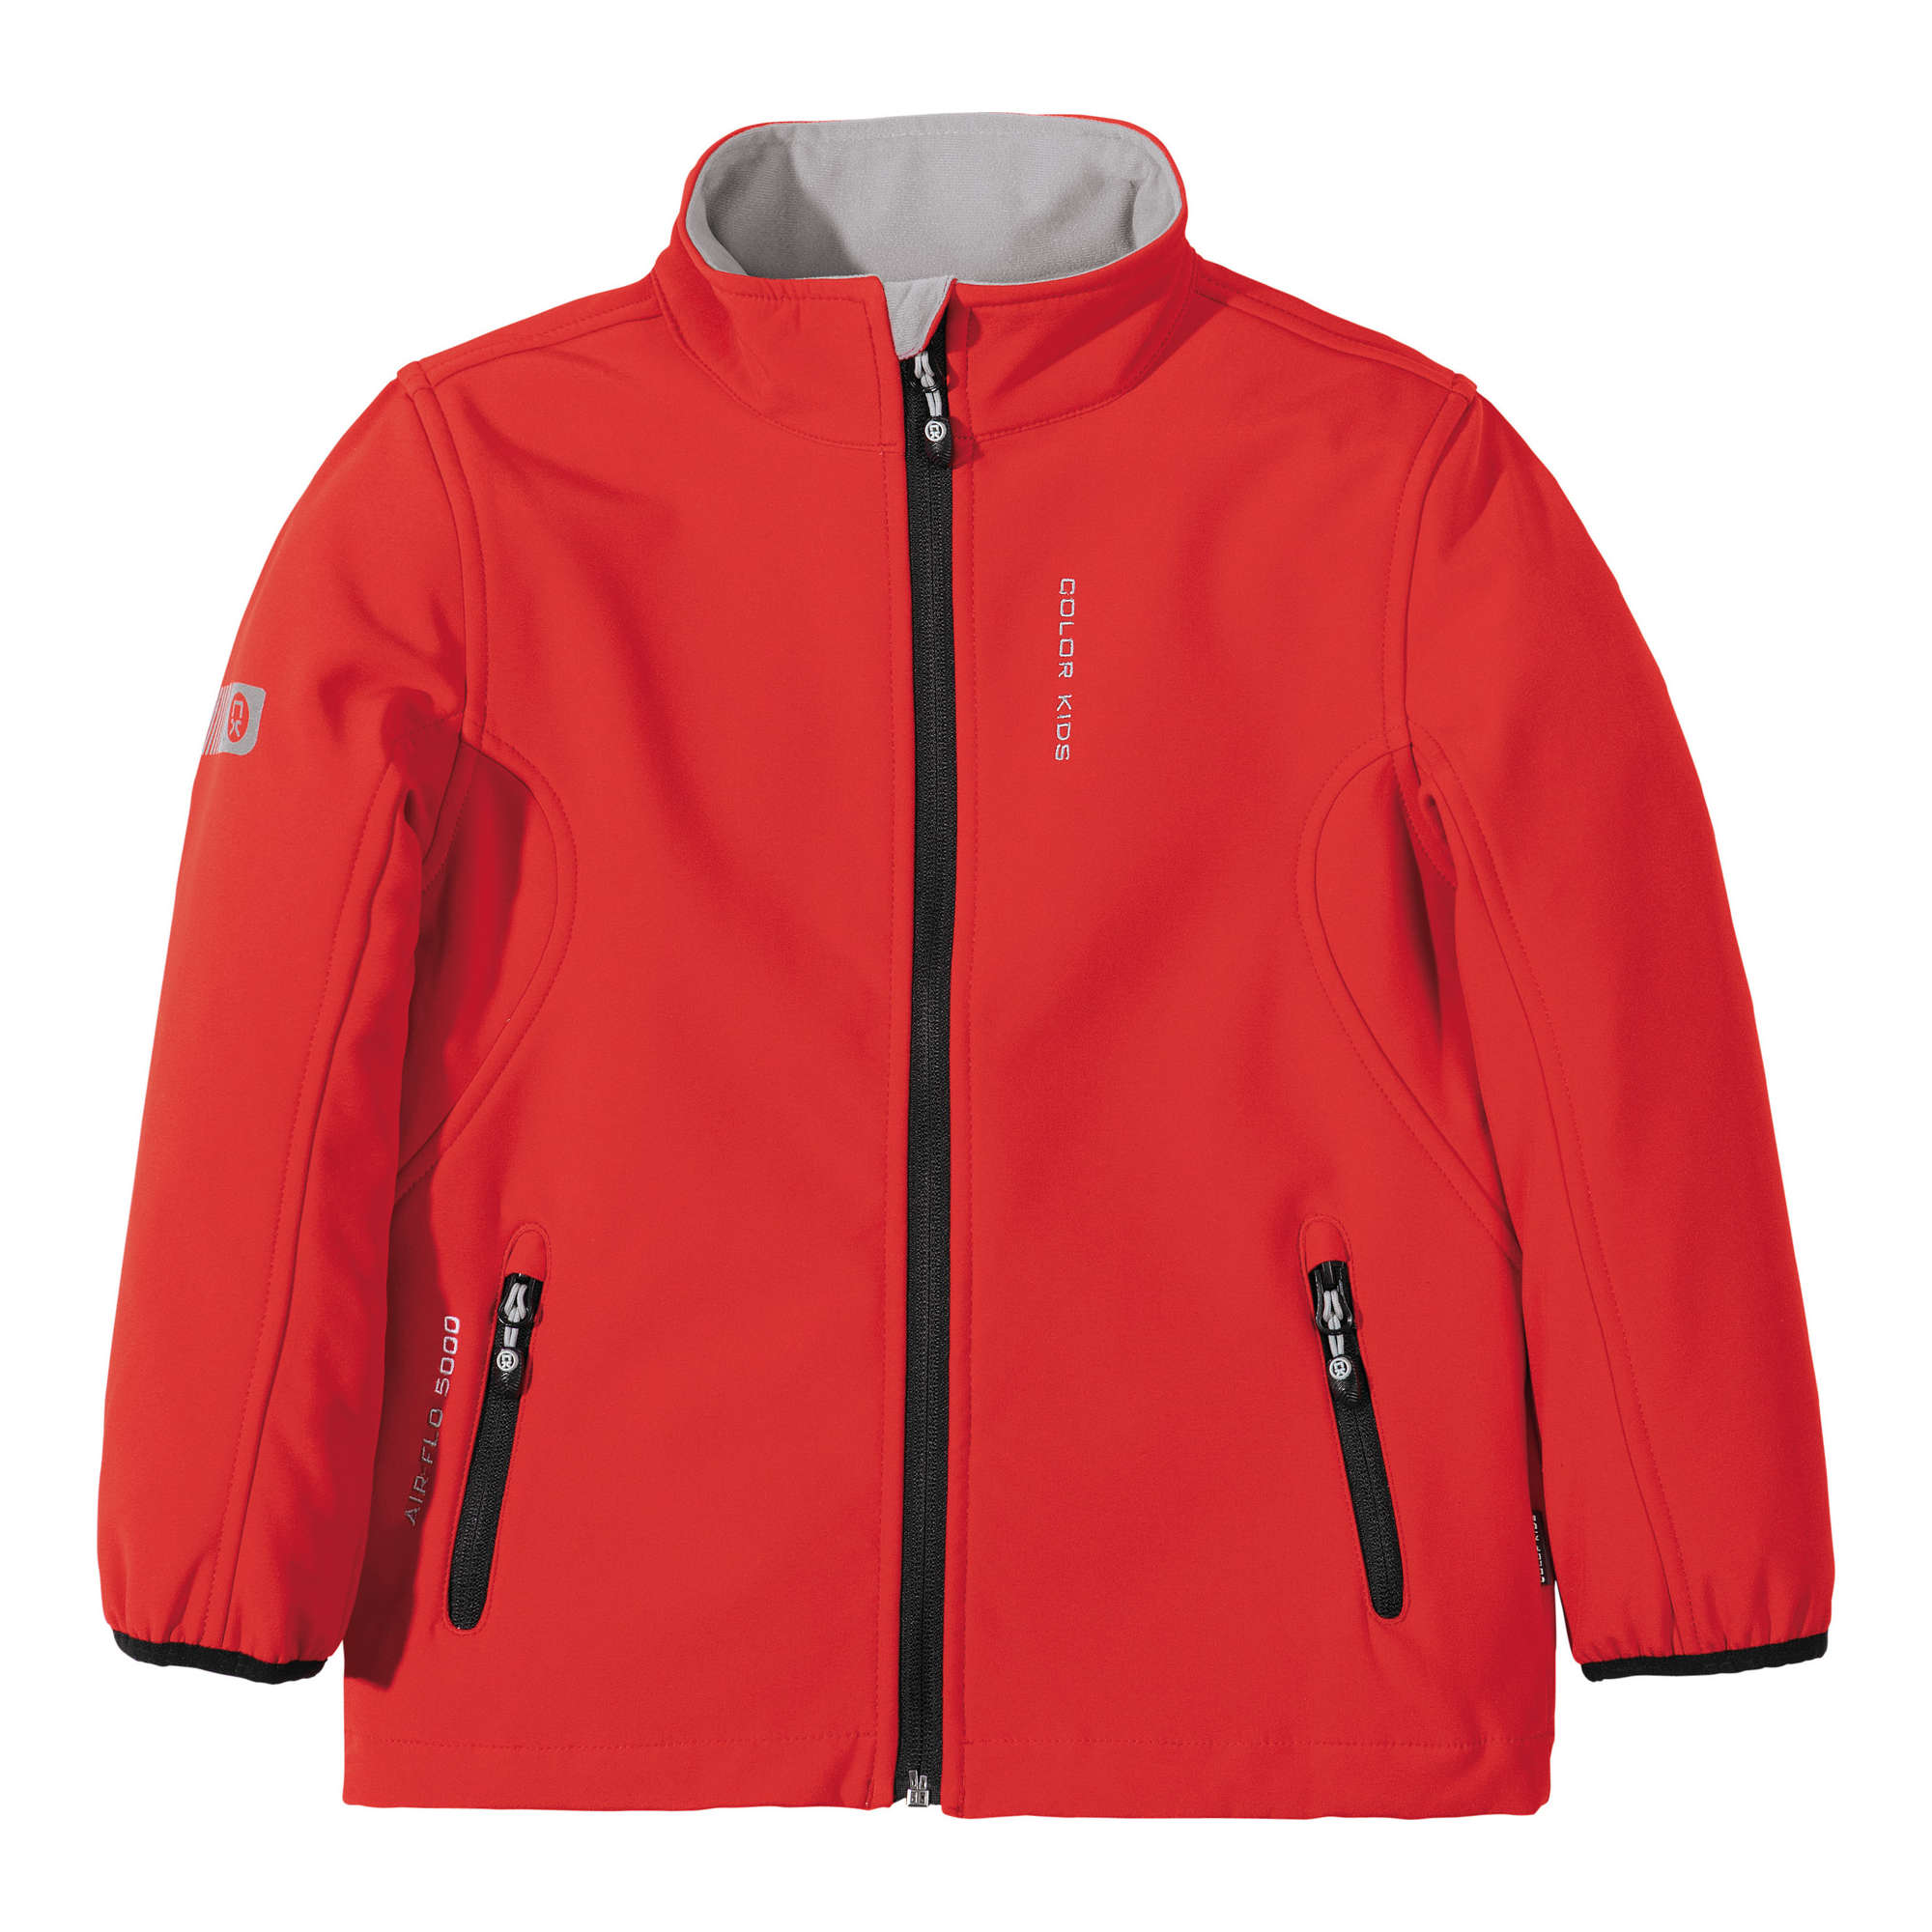 Shop for Kids' Soft-Shell Jackets at REI - FREE SHIPPING With $50 minimum purchase. Top quality, great selection and expert advice you can trust. % Satisfaction Guarantee. Shop for Kids' Soft-Shell Jackets at REI - FREE SHIPPING With $50 minimum purchase. Top quality, great selection and expert advice you can trust. % Satisfaction Guarantee.